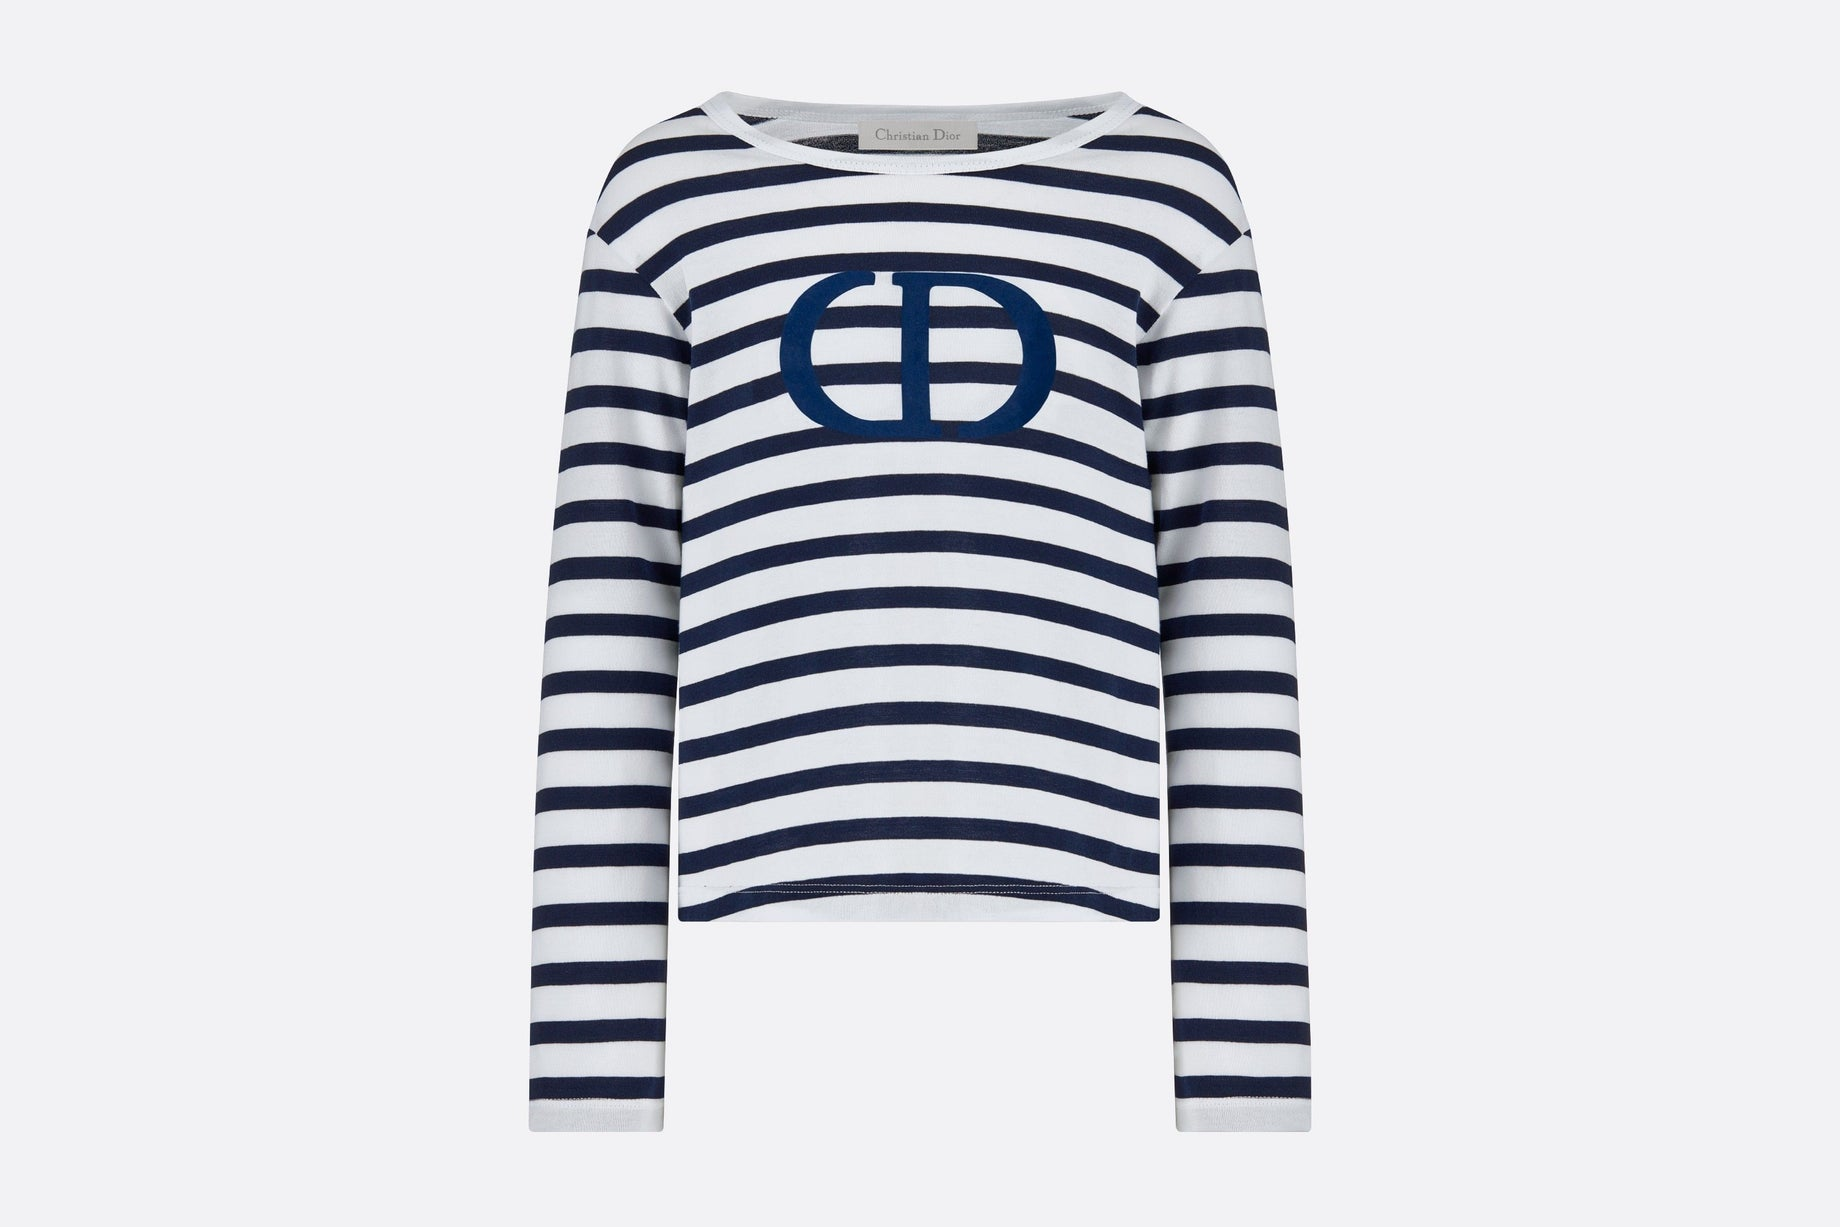 T-Shirt • White and Navy Blue Cotton Jersey